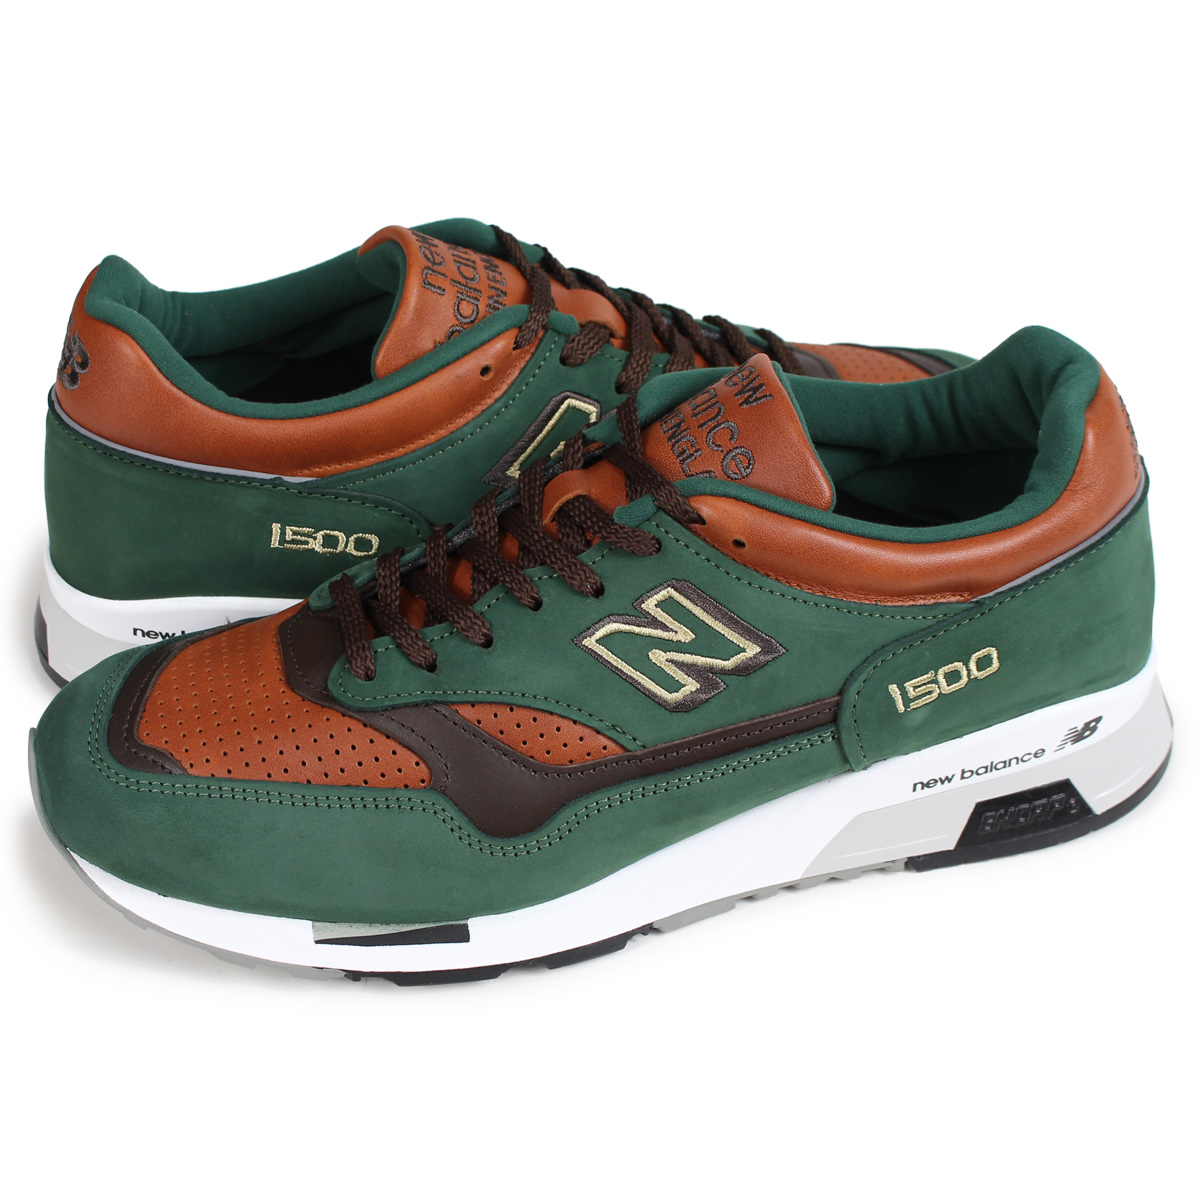 new balance M1500GT New Balance 1500 men's sneakers D Wise MADE IN UK green